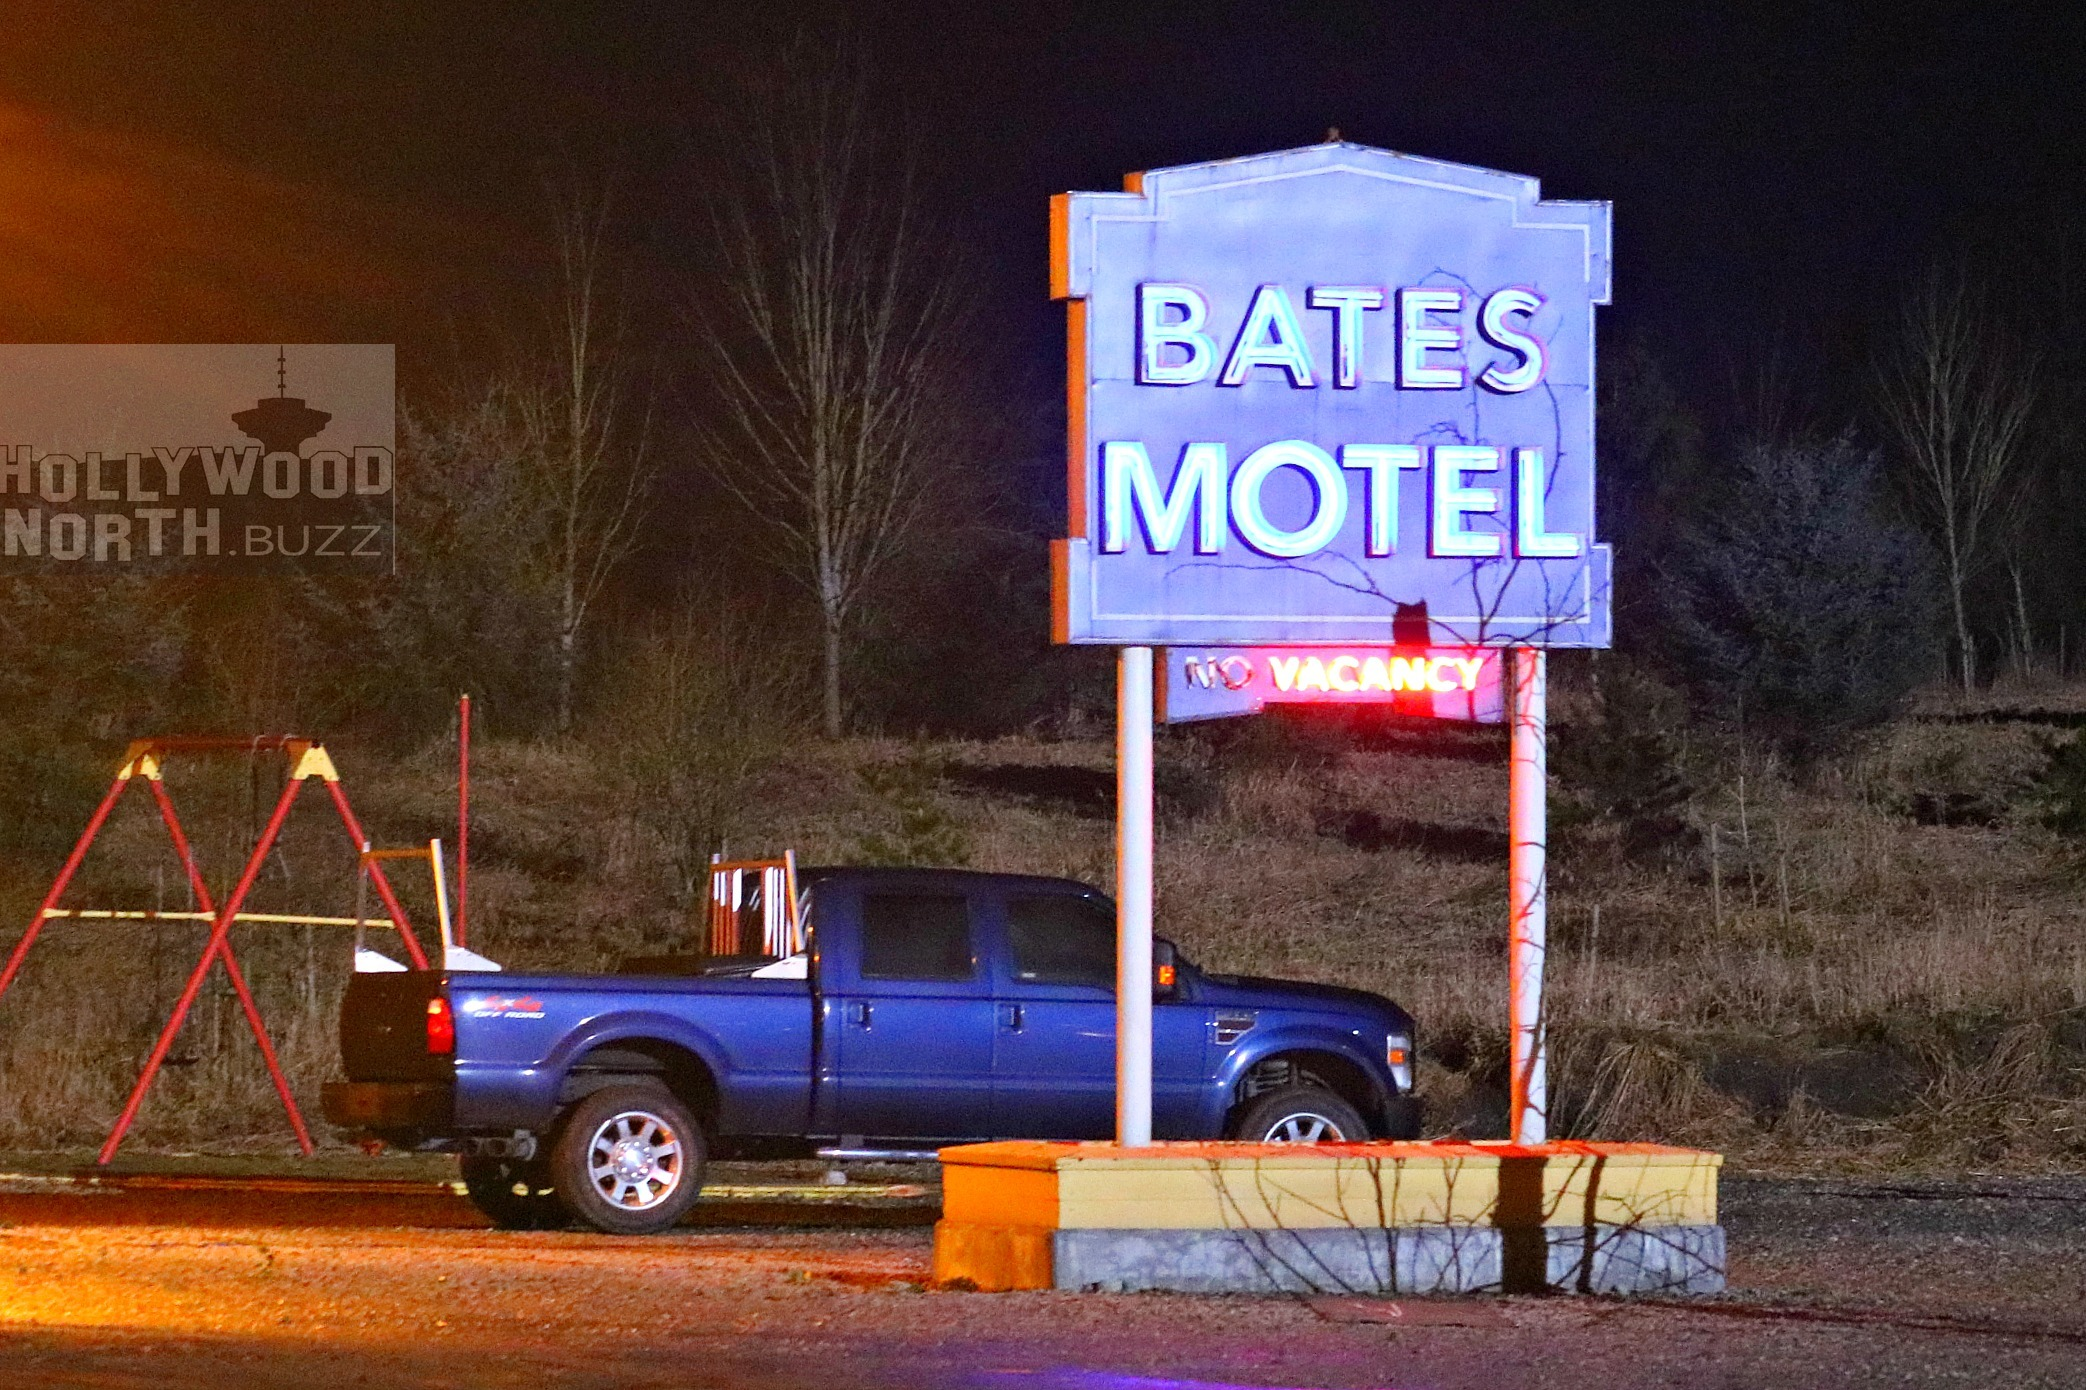 bates motel last night4-2